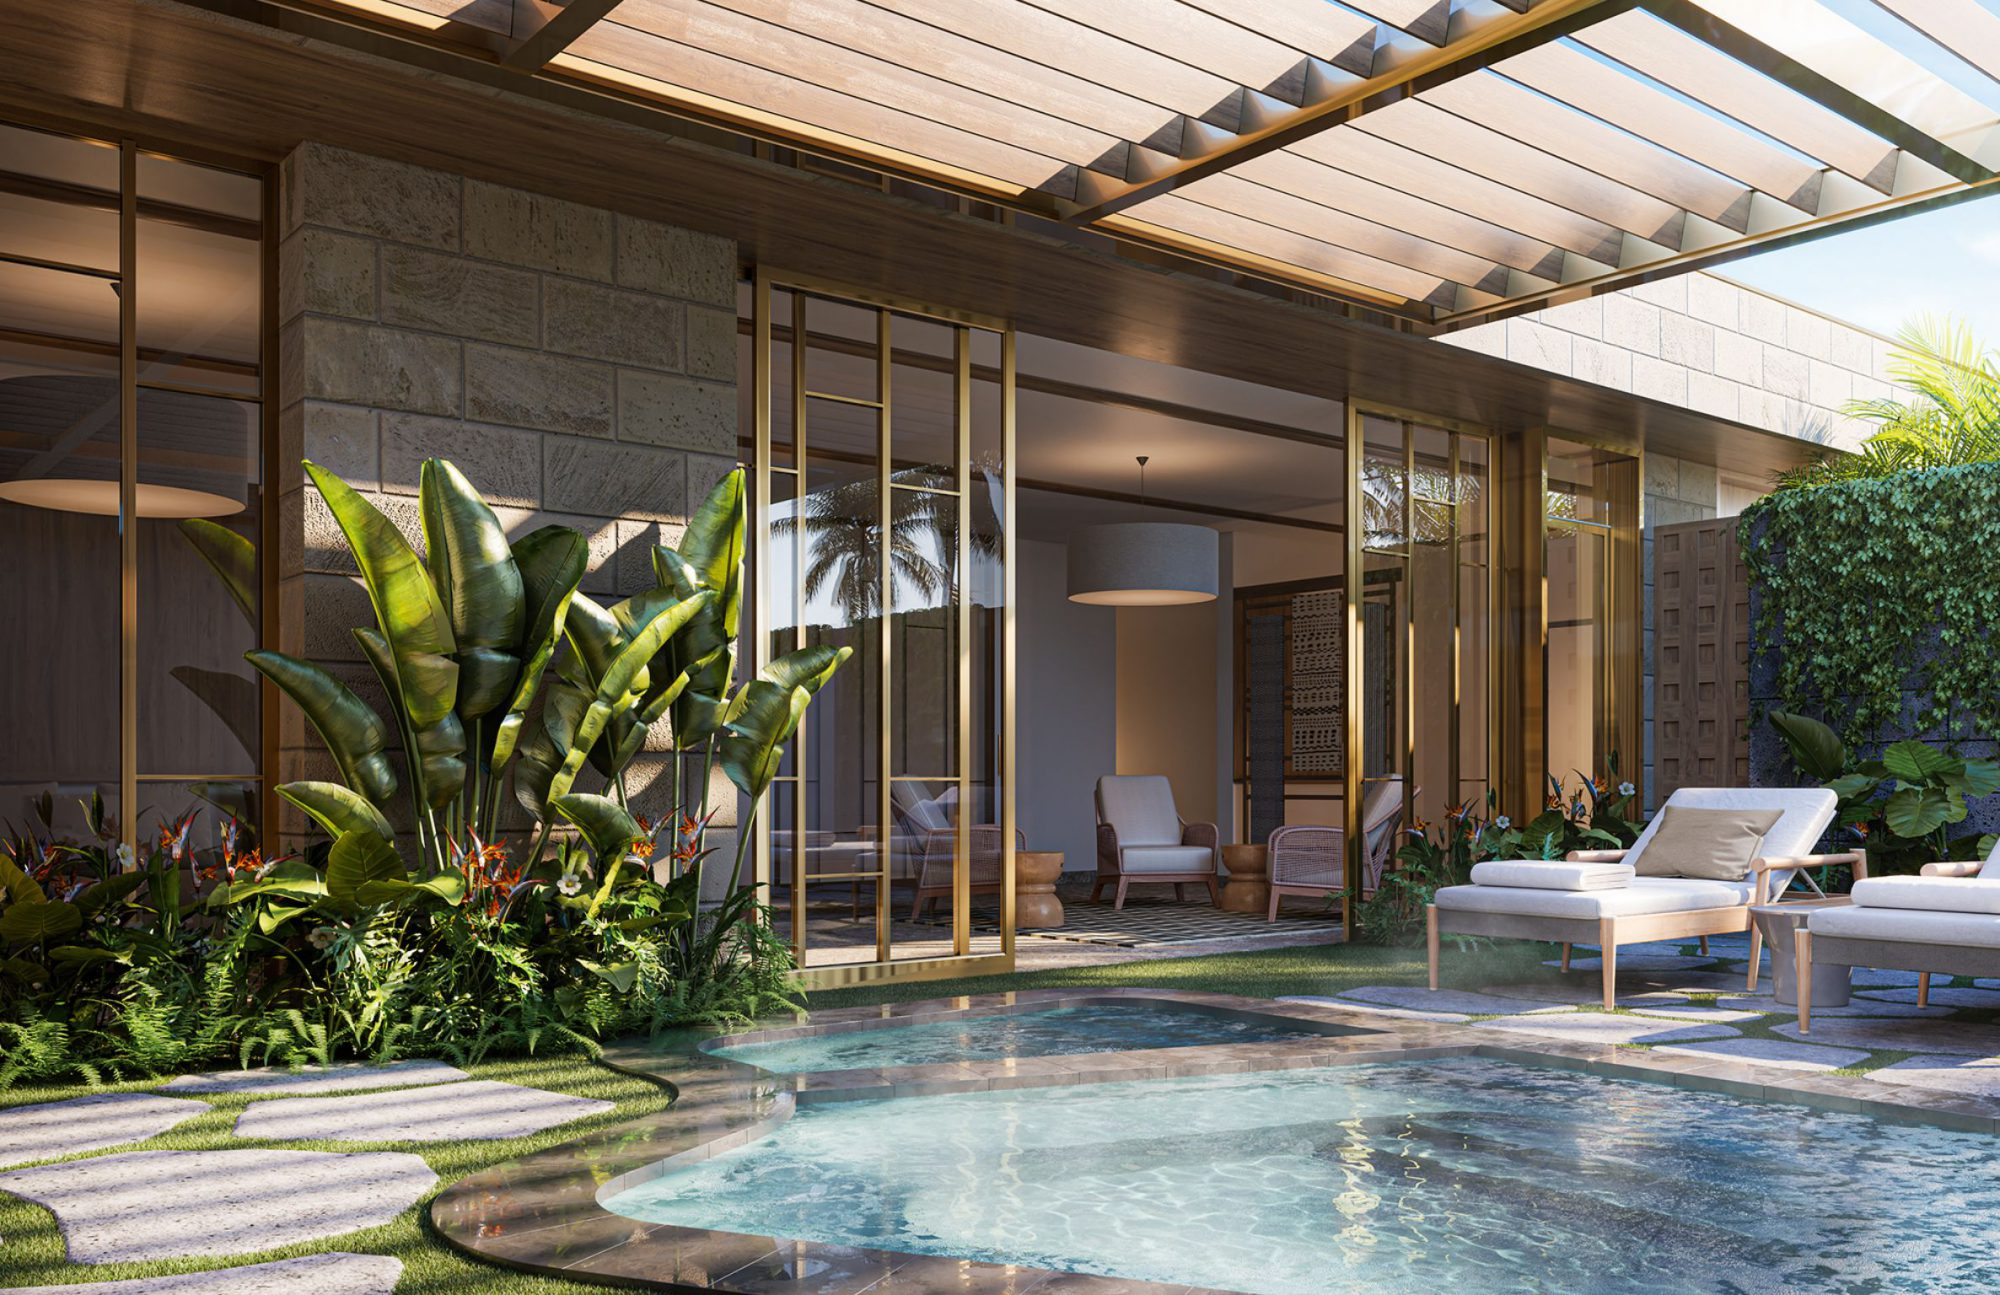 Spa Lounge amenity showing outdoor plunge pool and indoor lounge seating area